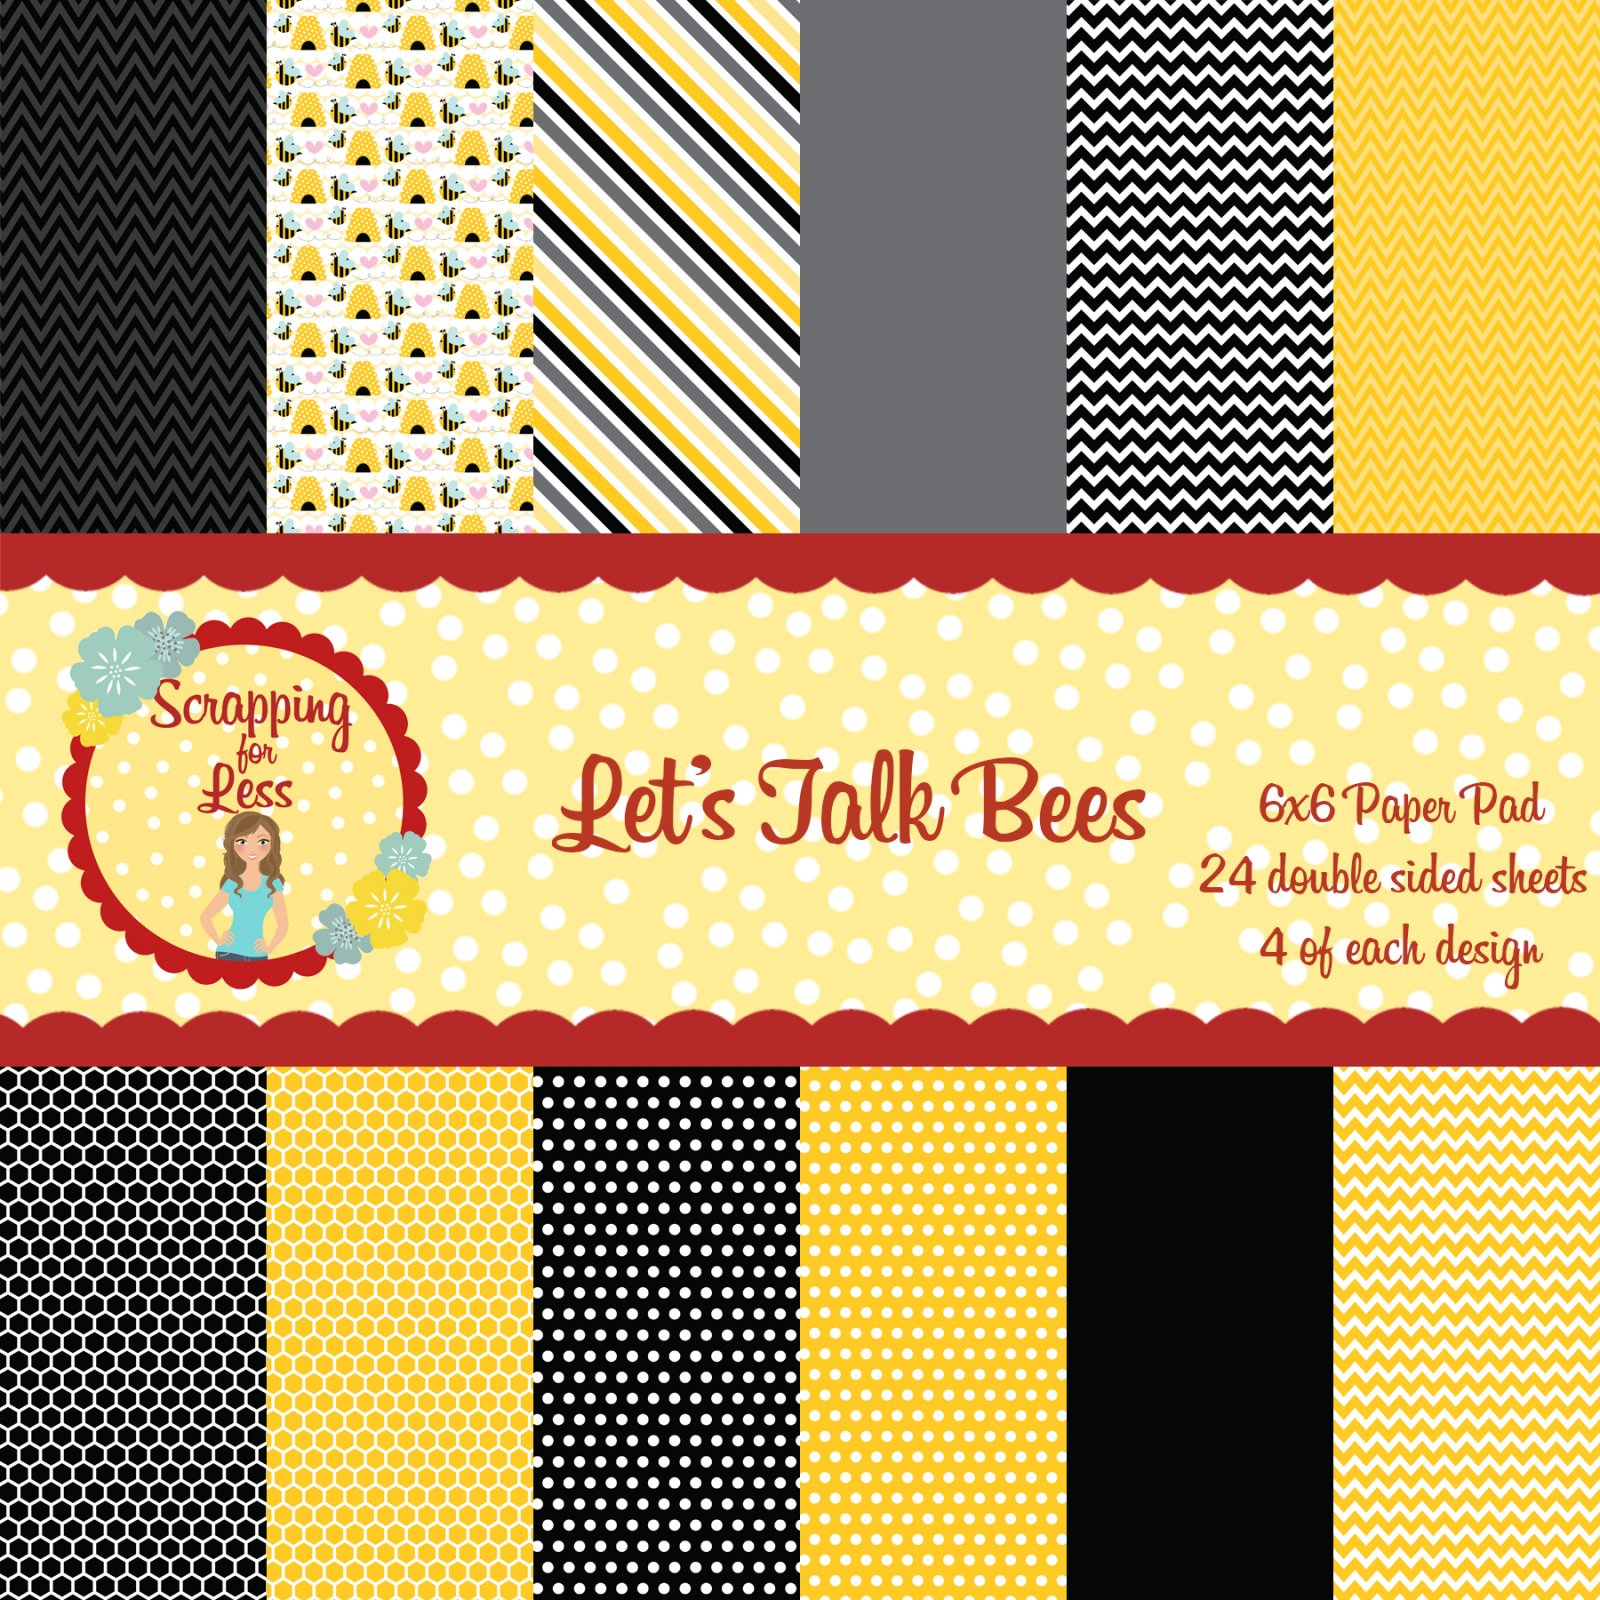 Scrapping for Less 6x6 Paper Pad Let's Talk Bees